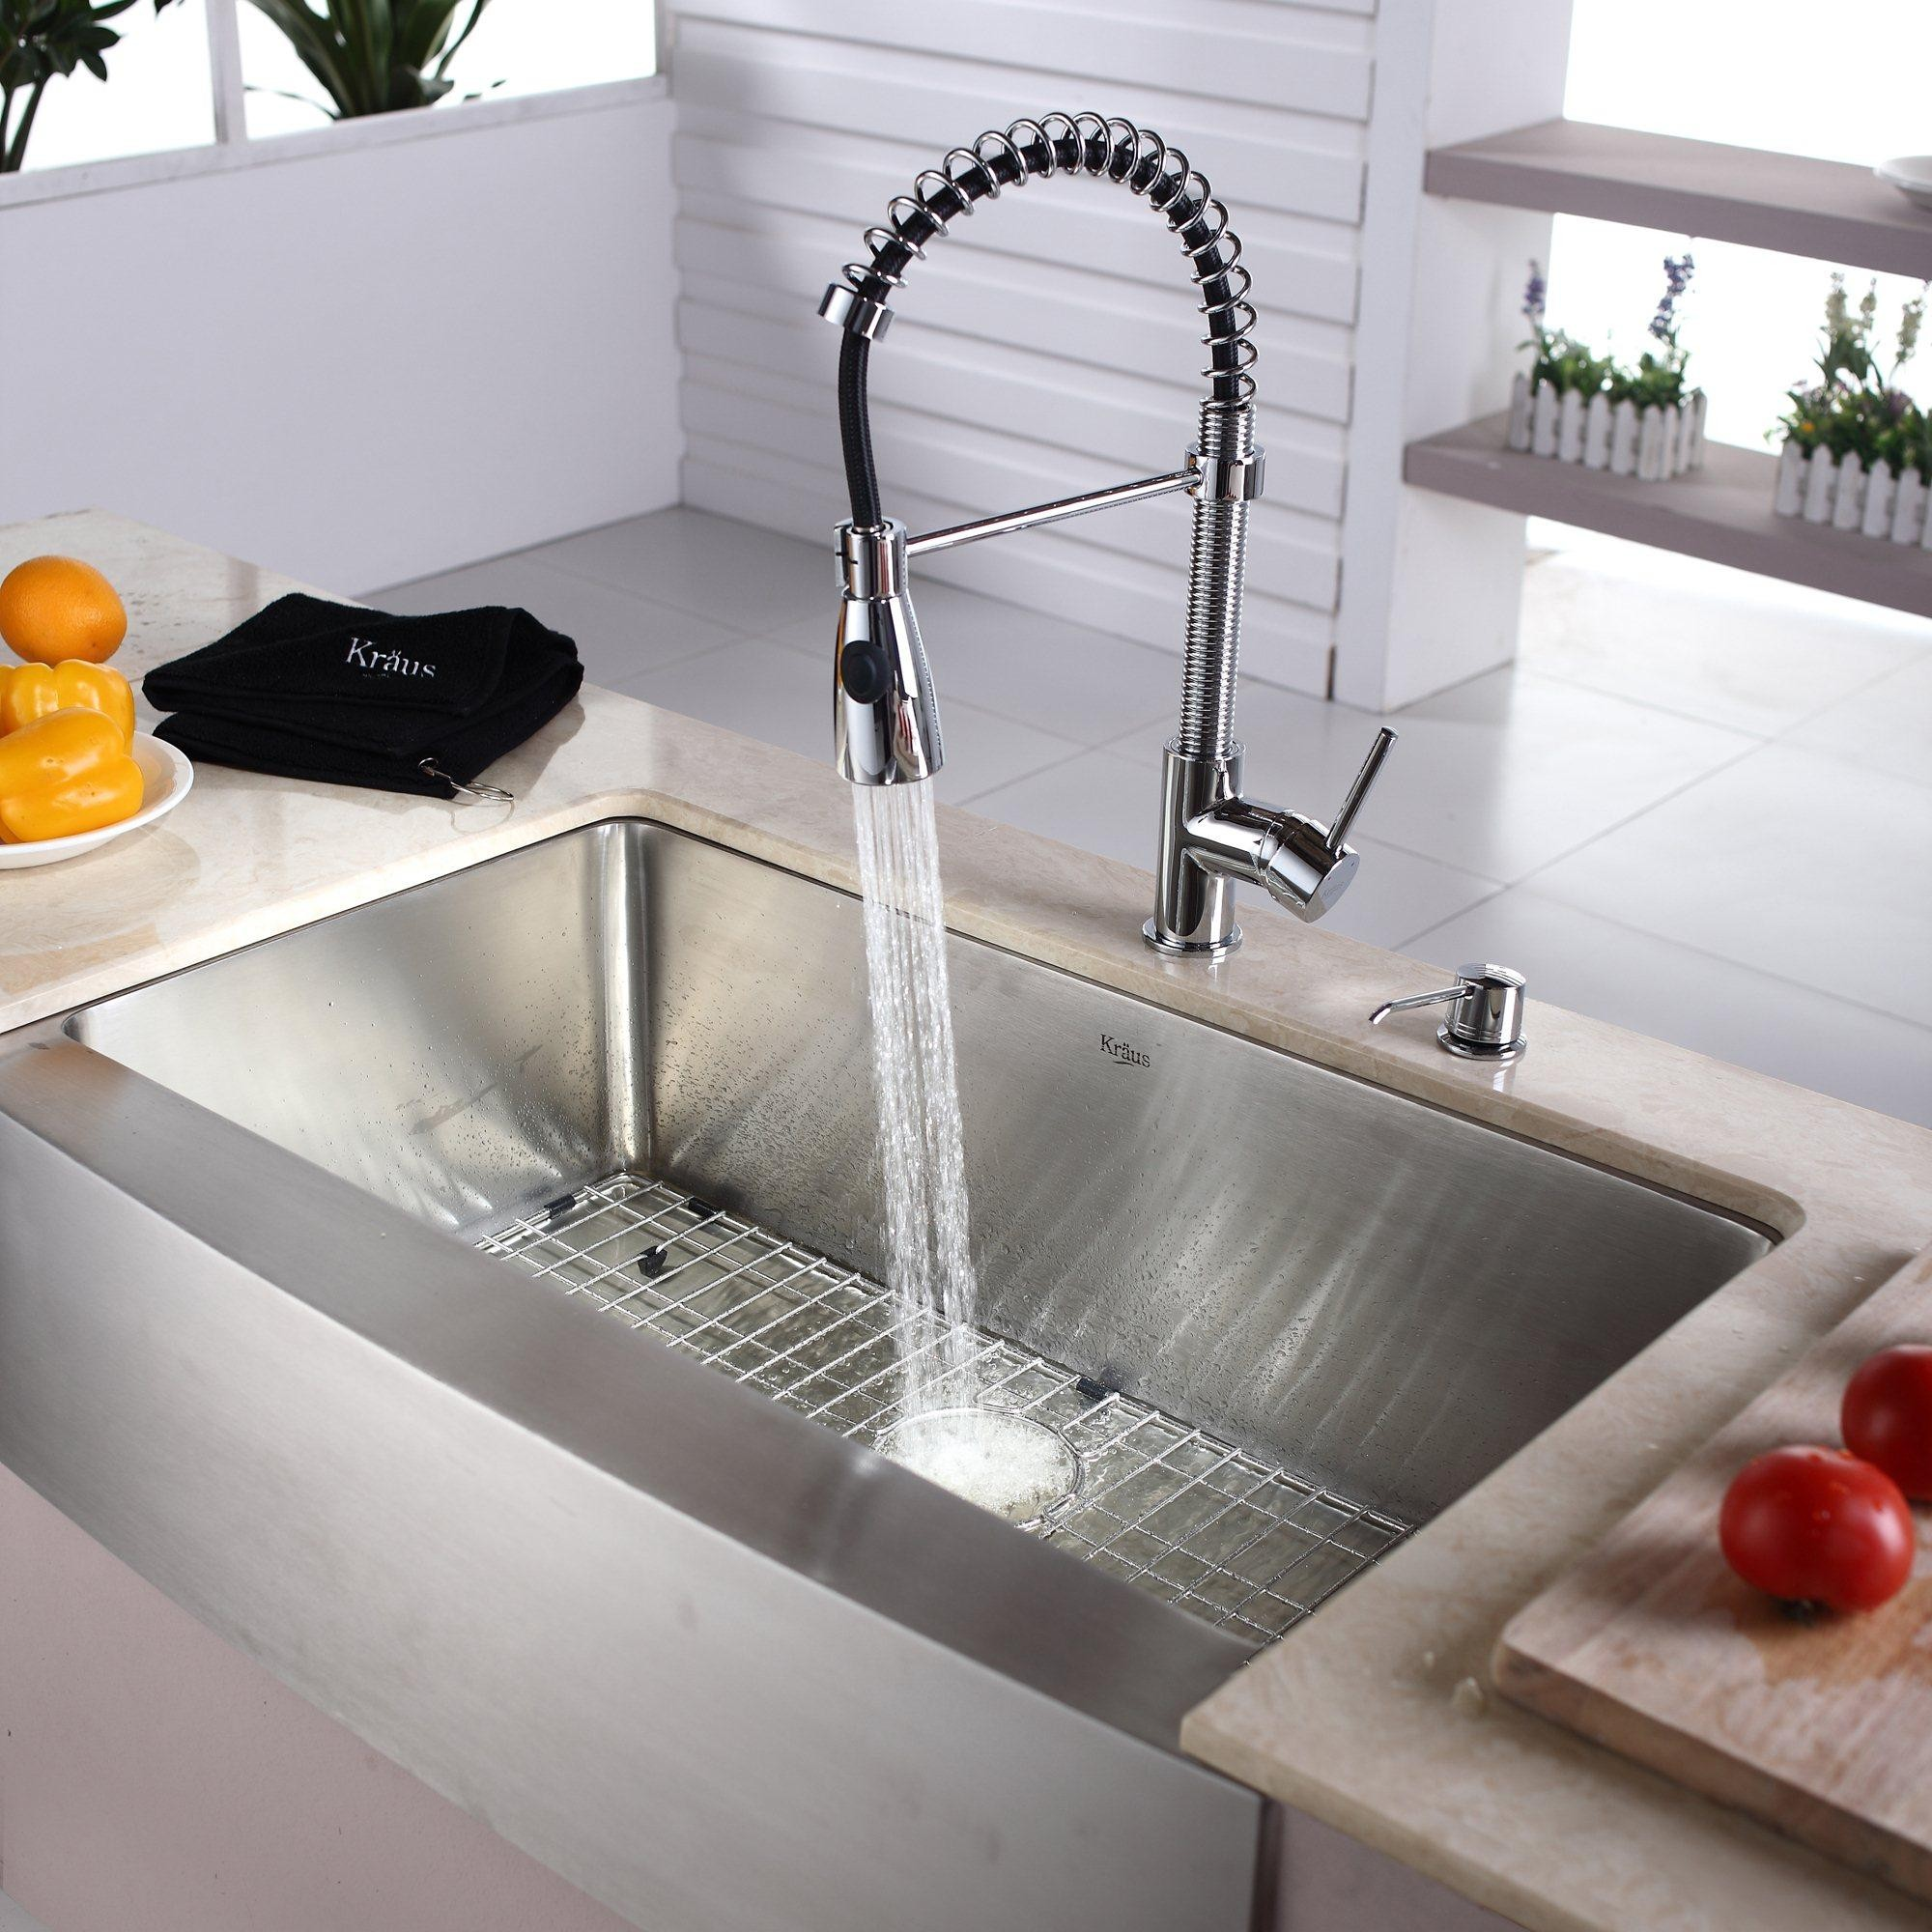 11 Best Stainless Steel Kitchen Sinks 2019 – Reviews ...